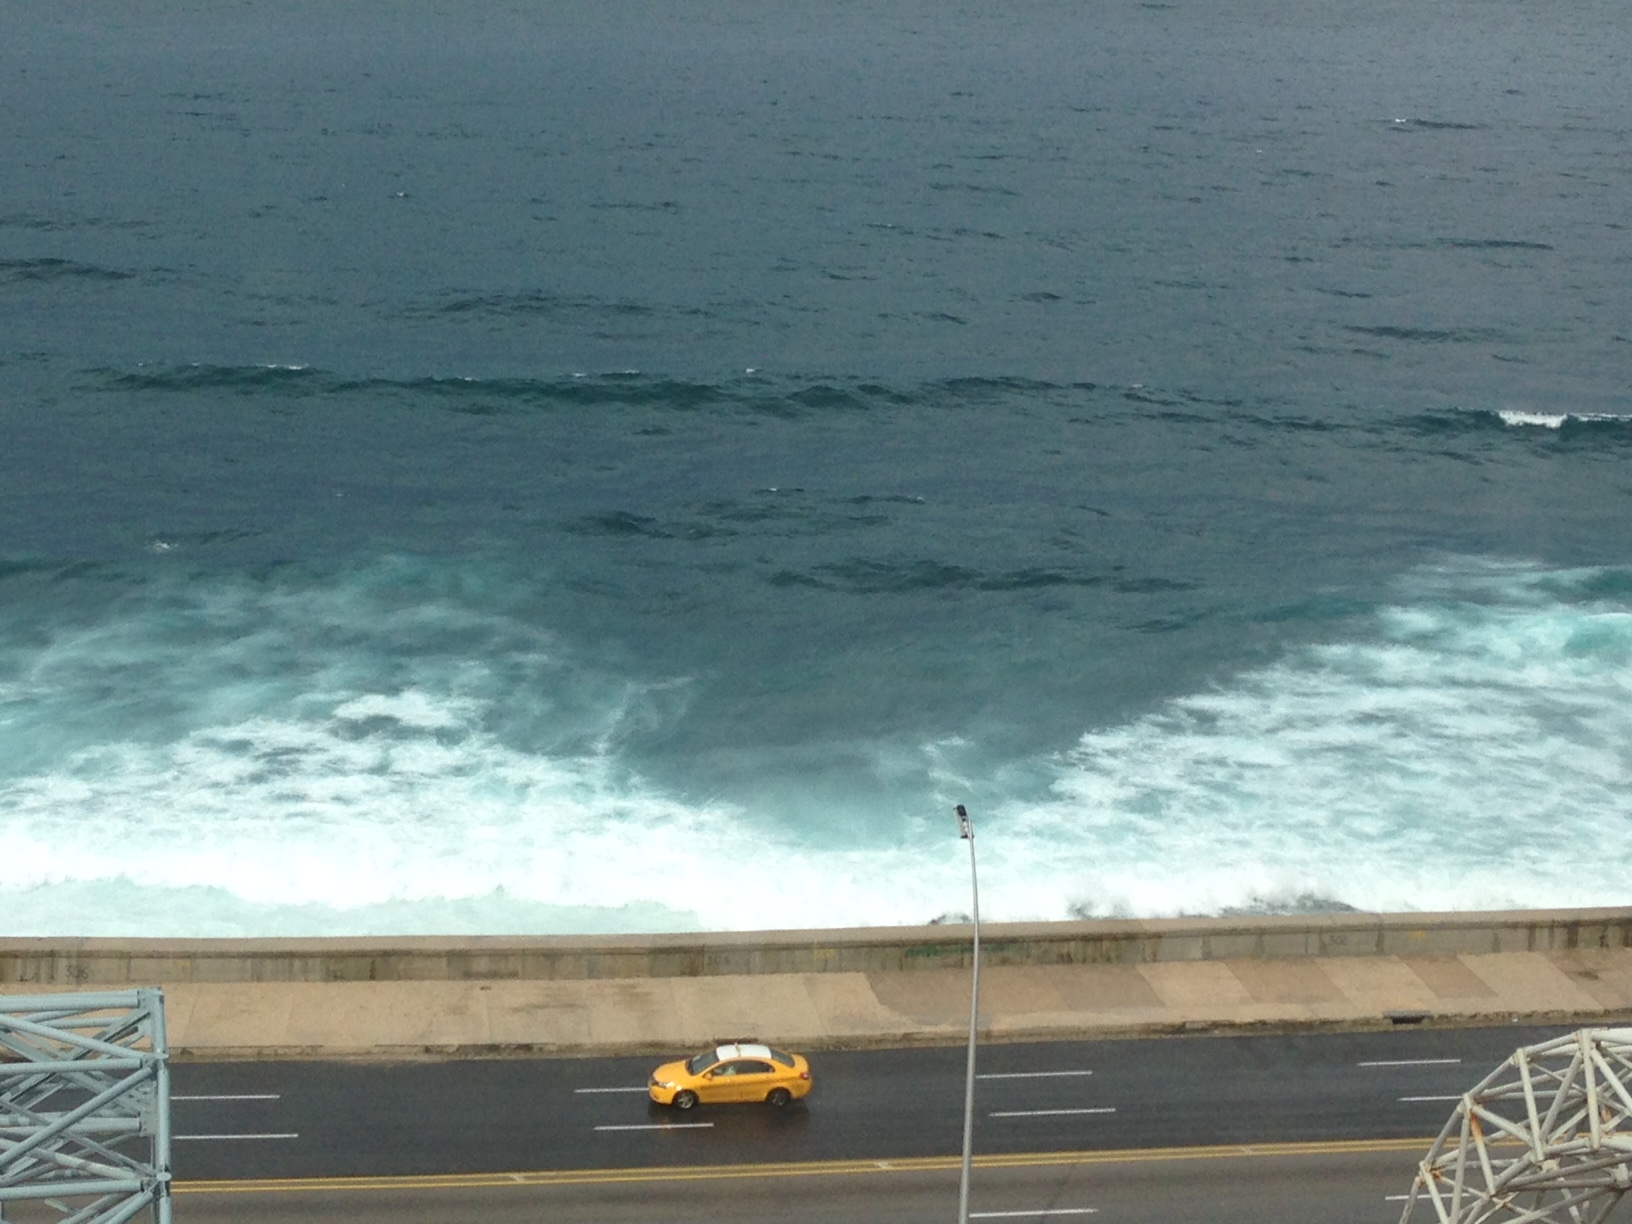 Havana's dramatic sea wall.